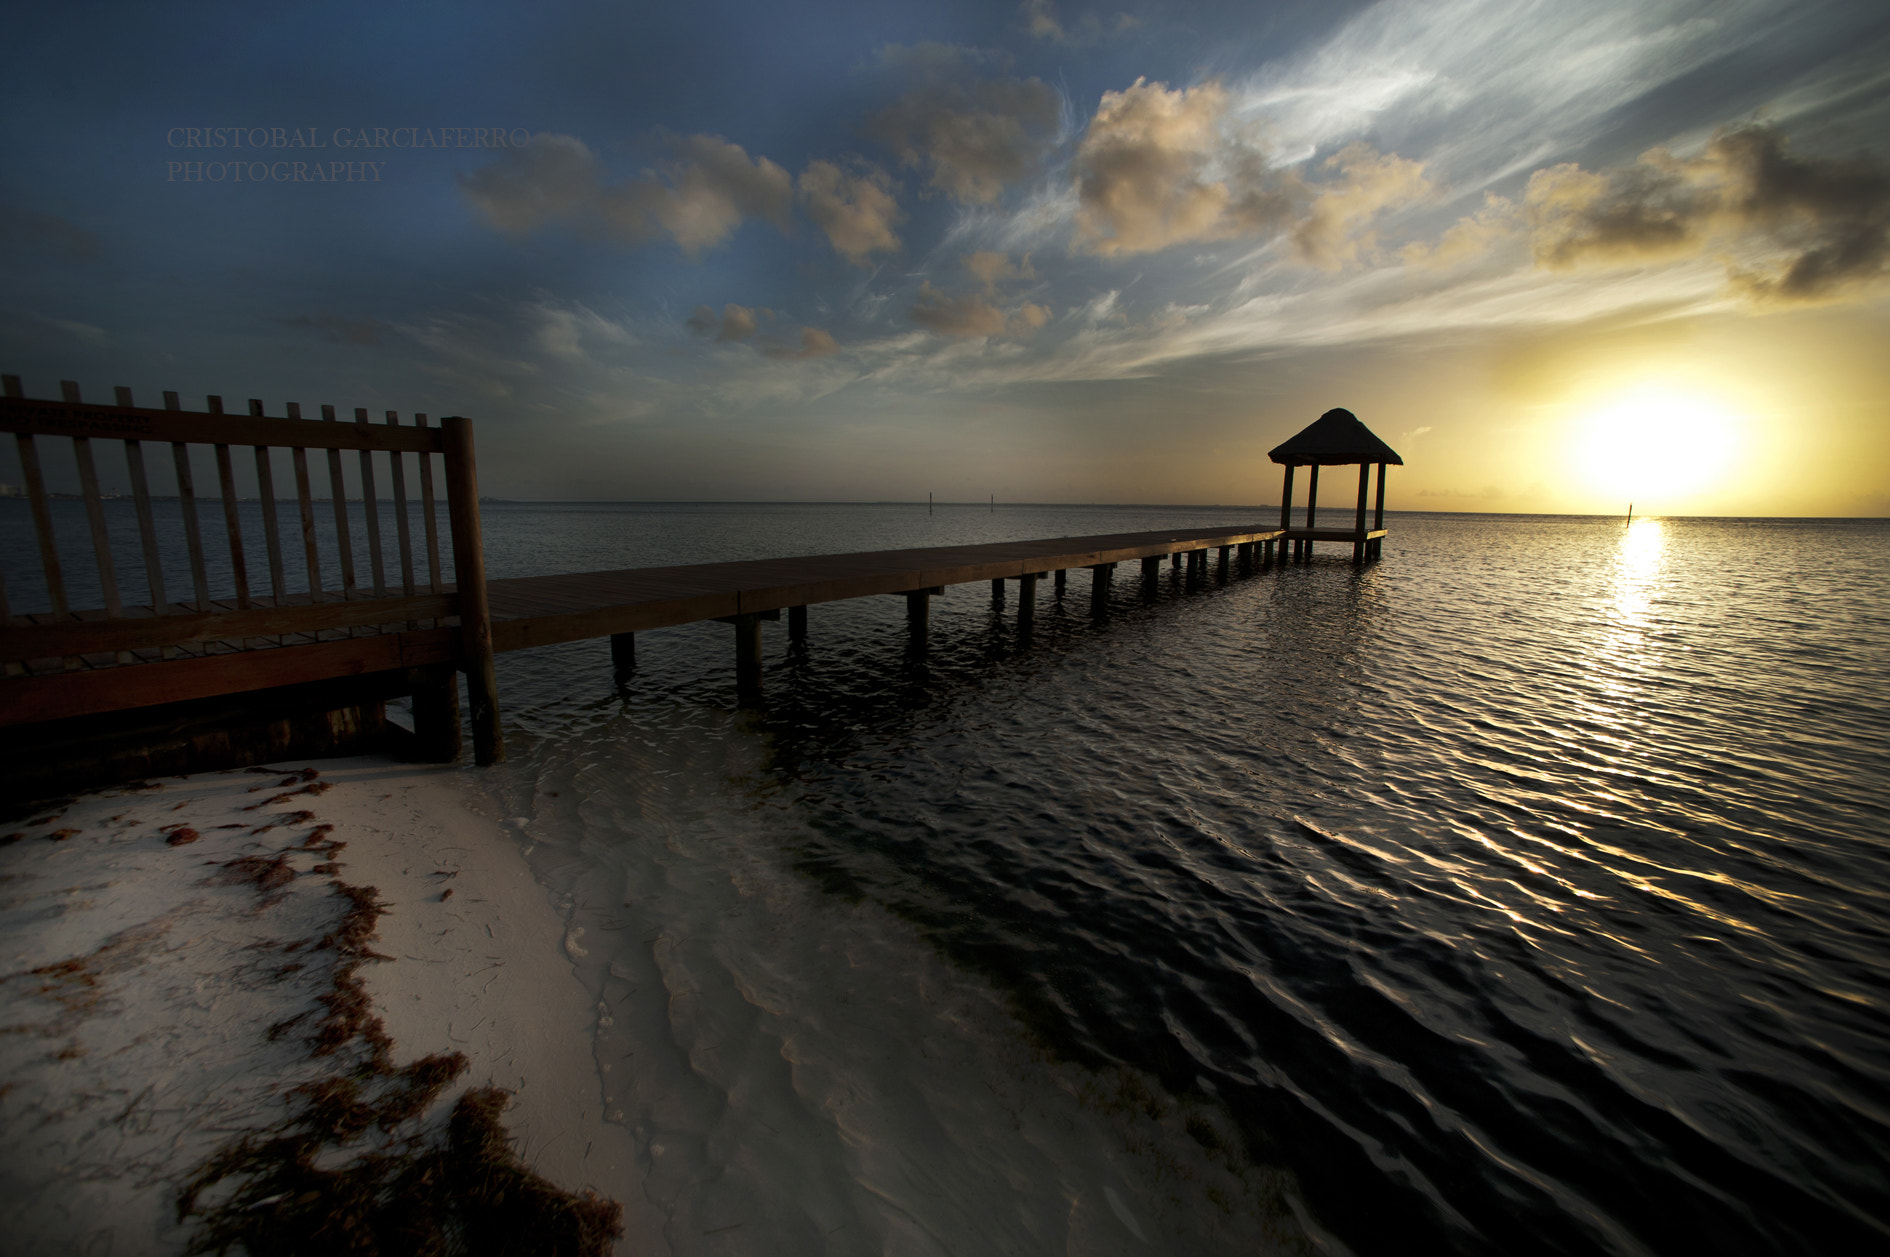 Photograph Wood Dock in Cancun by Cristobal Garciaferro Rubio on 500px